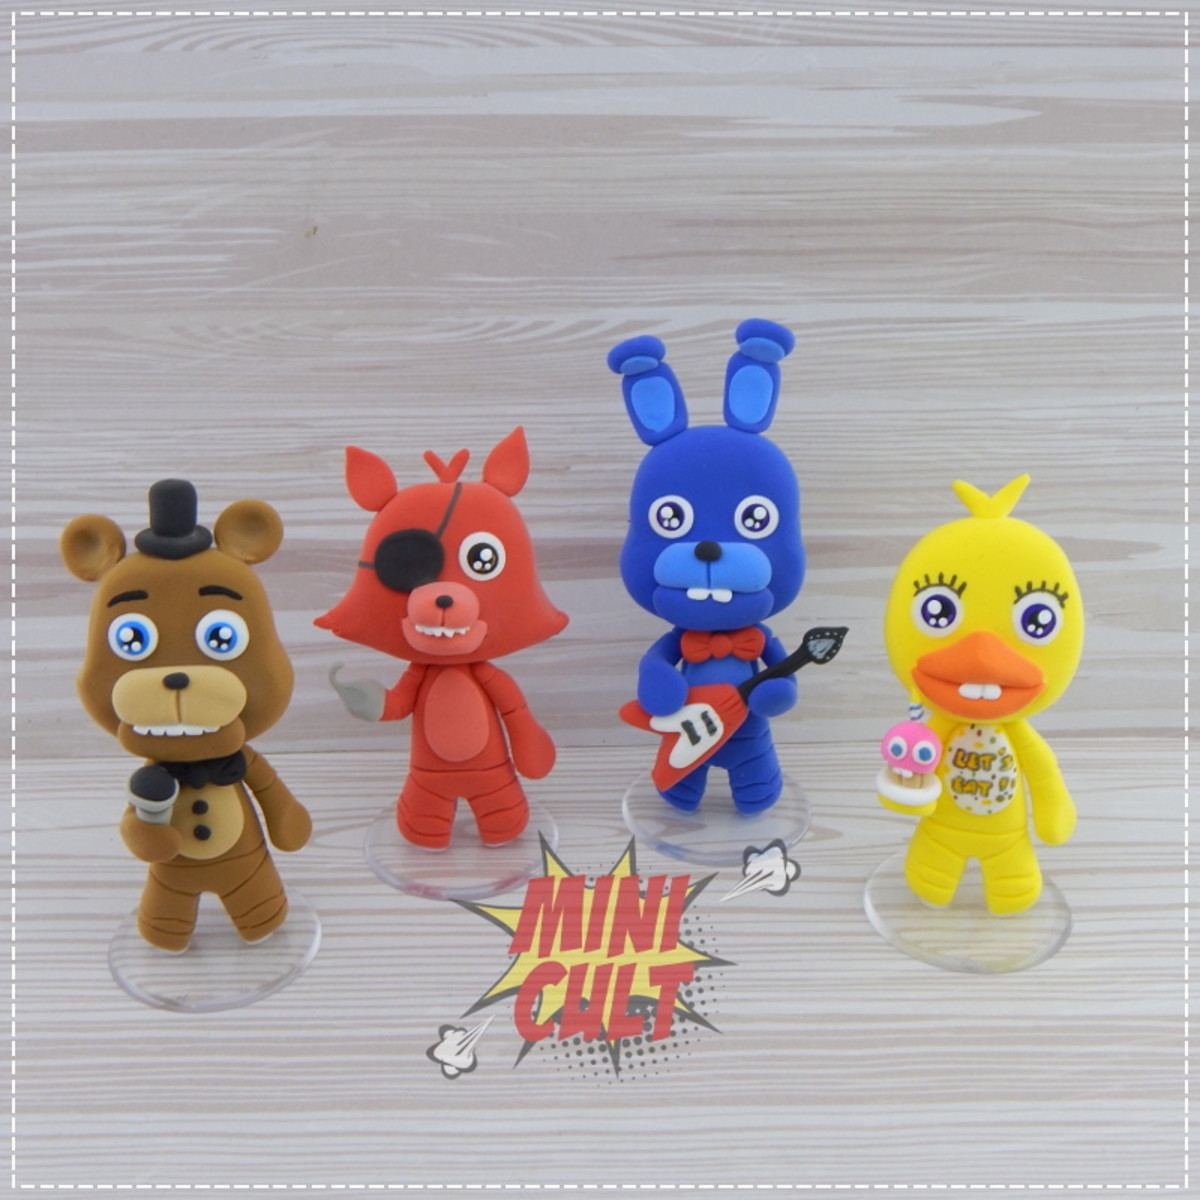 Kit Toy Five Nights At Freddy's / FNAF 4 Unidades No Elo7